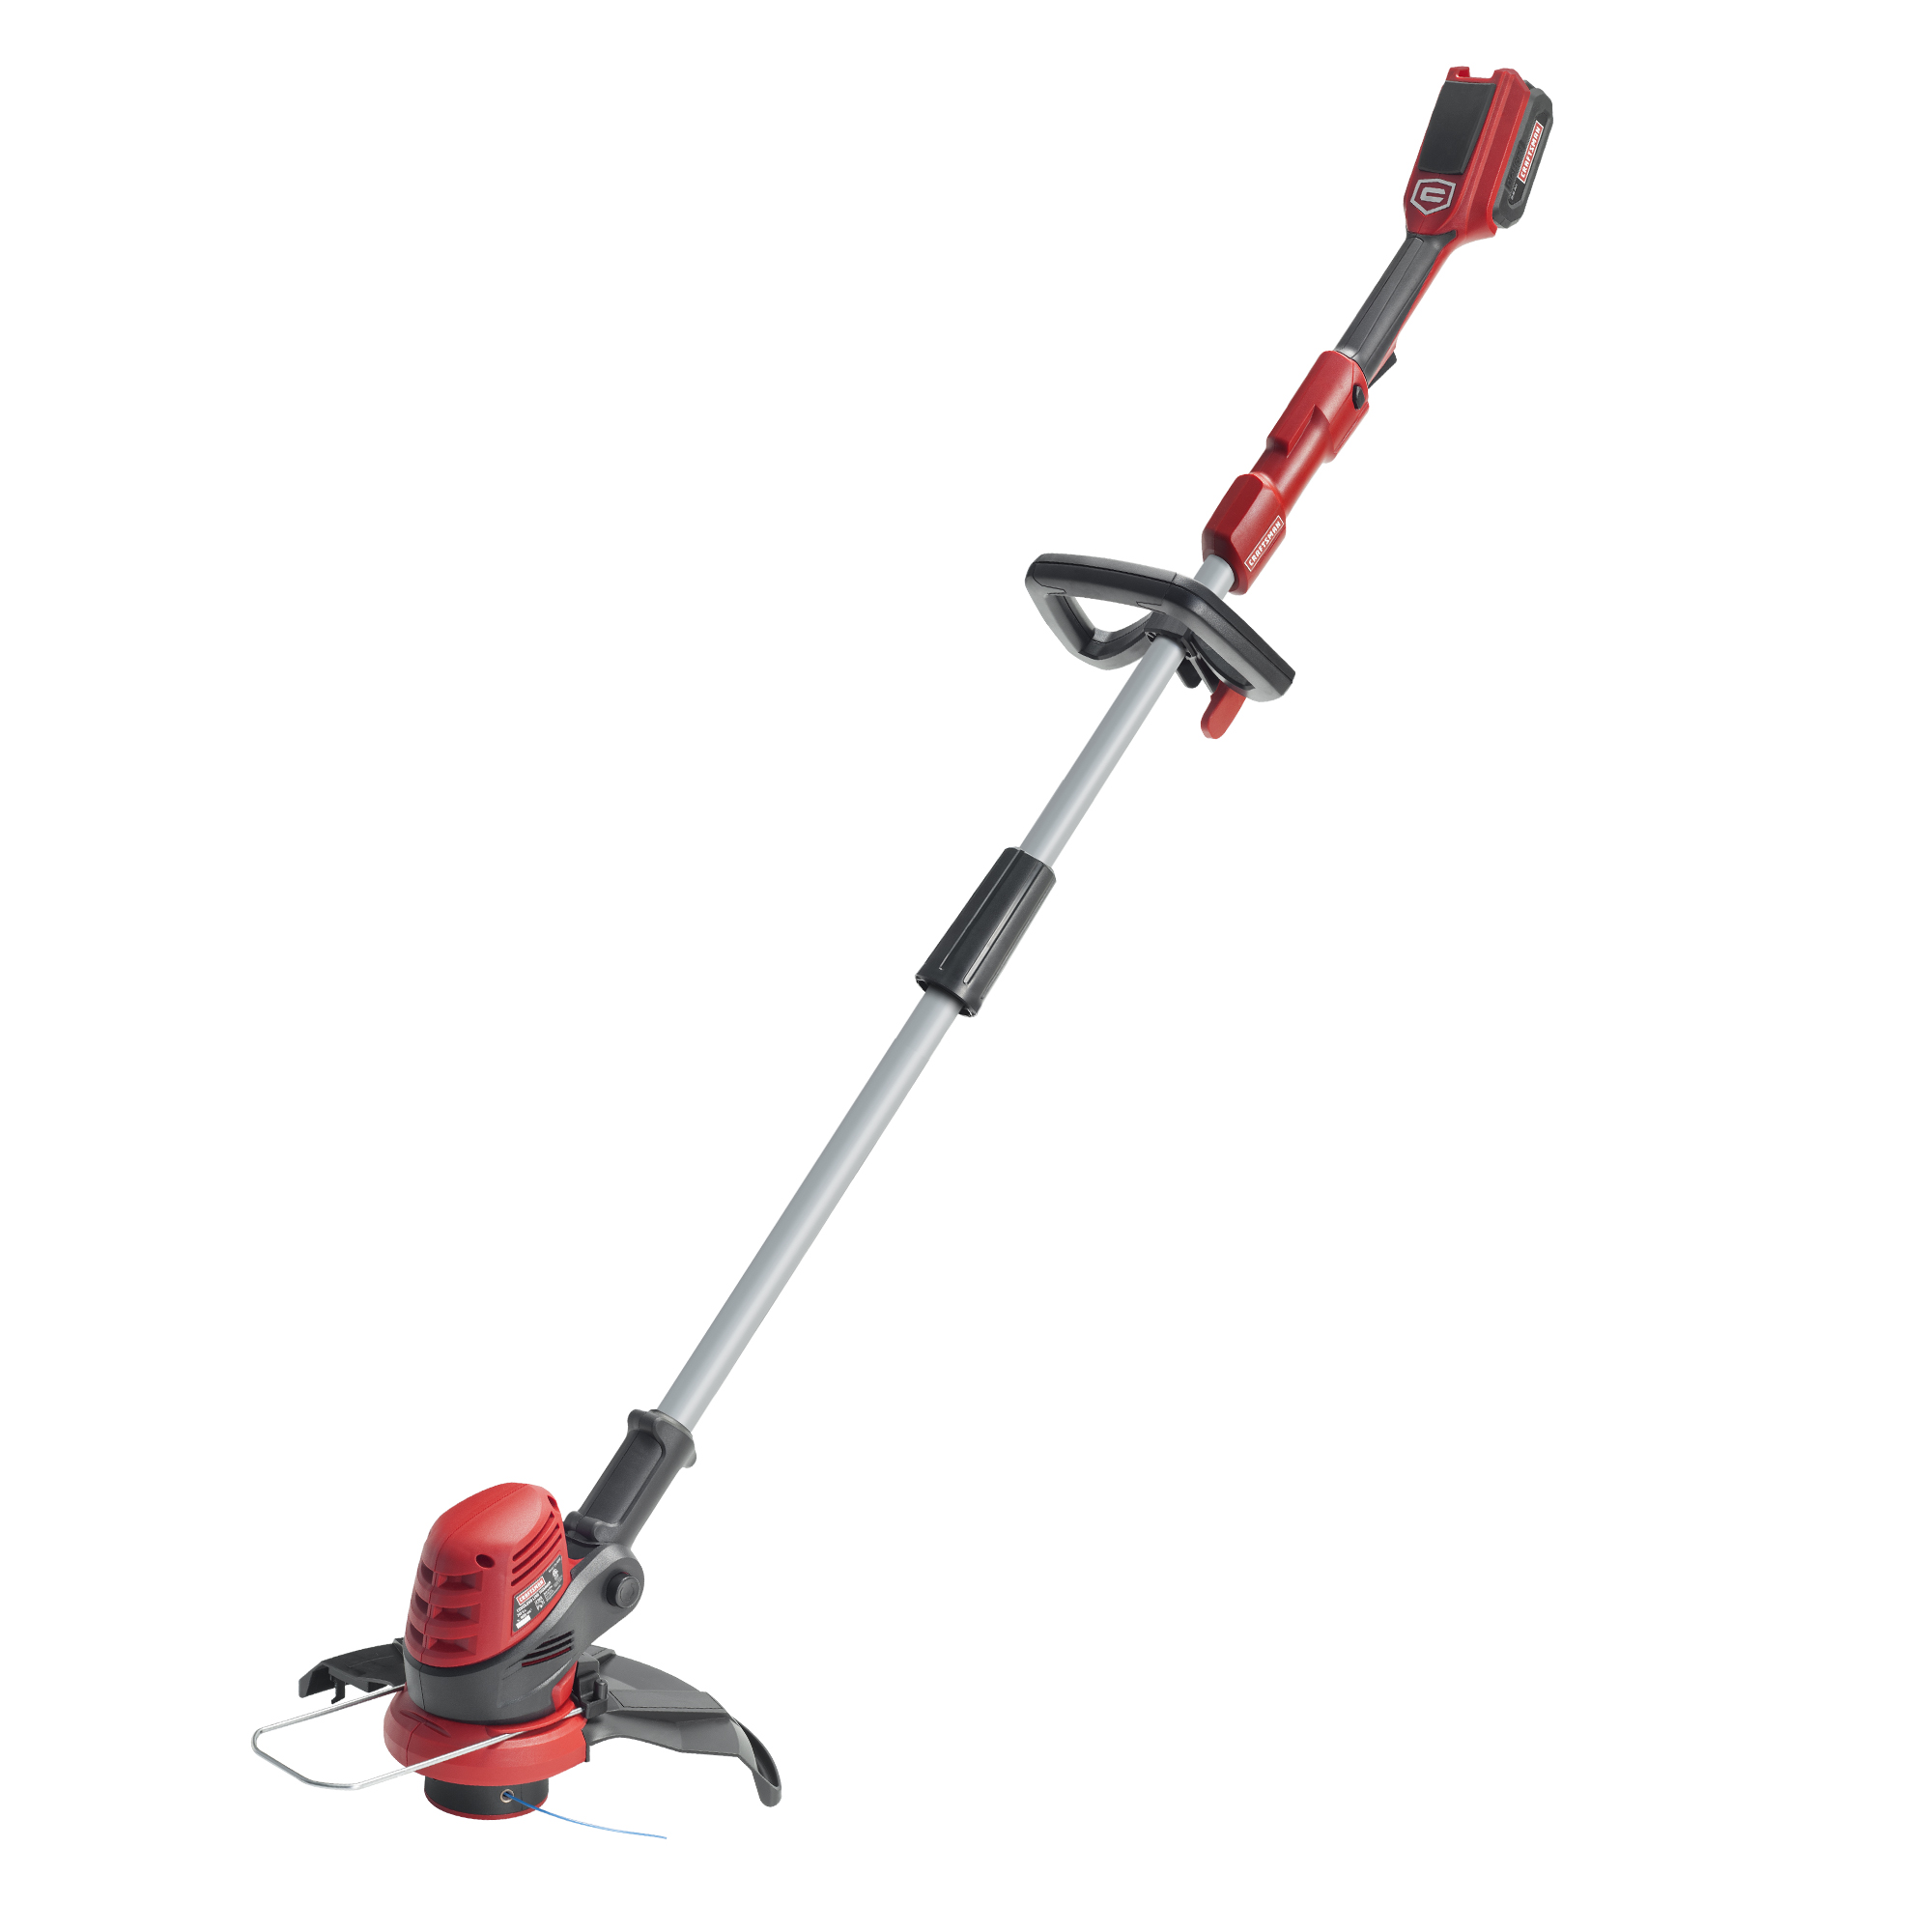 Sears Weed Eater Attachments